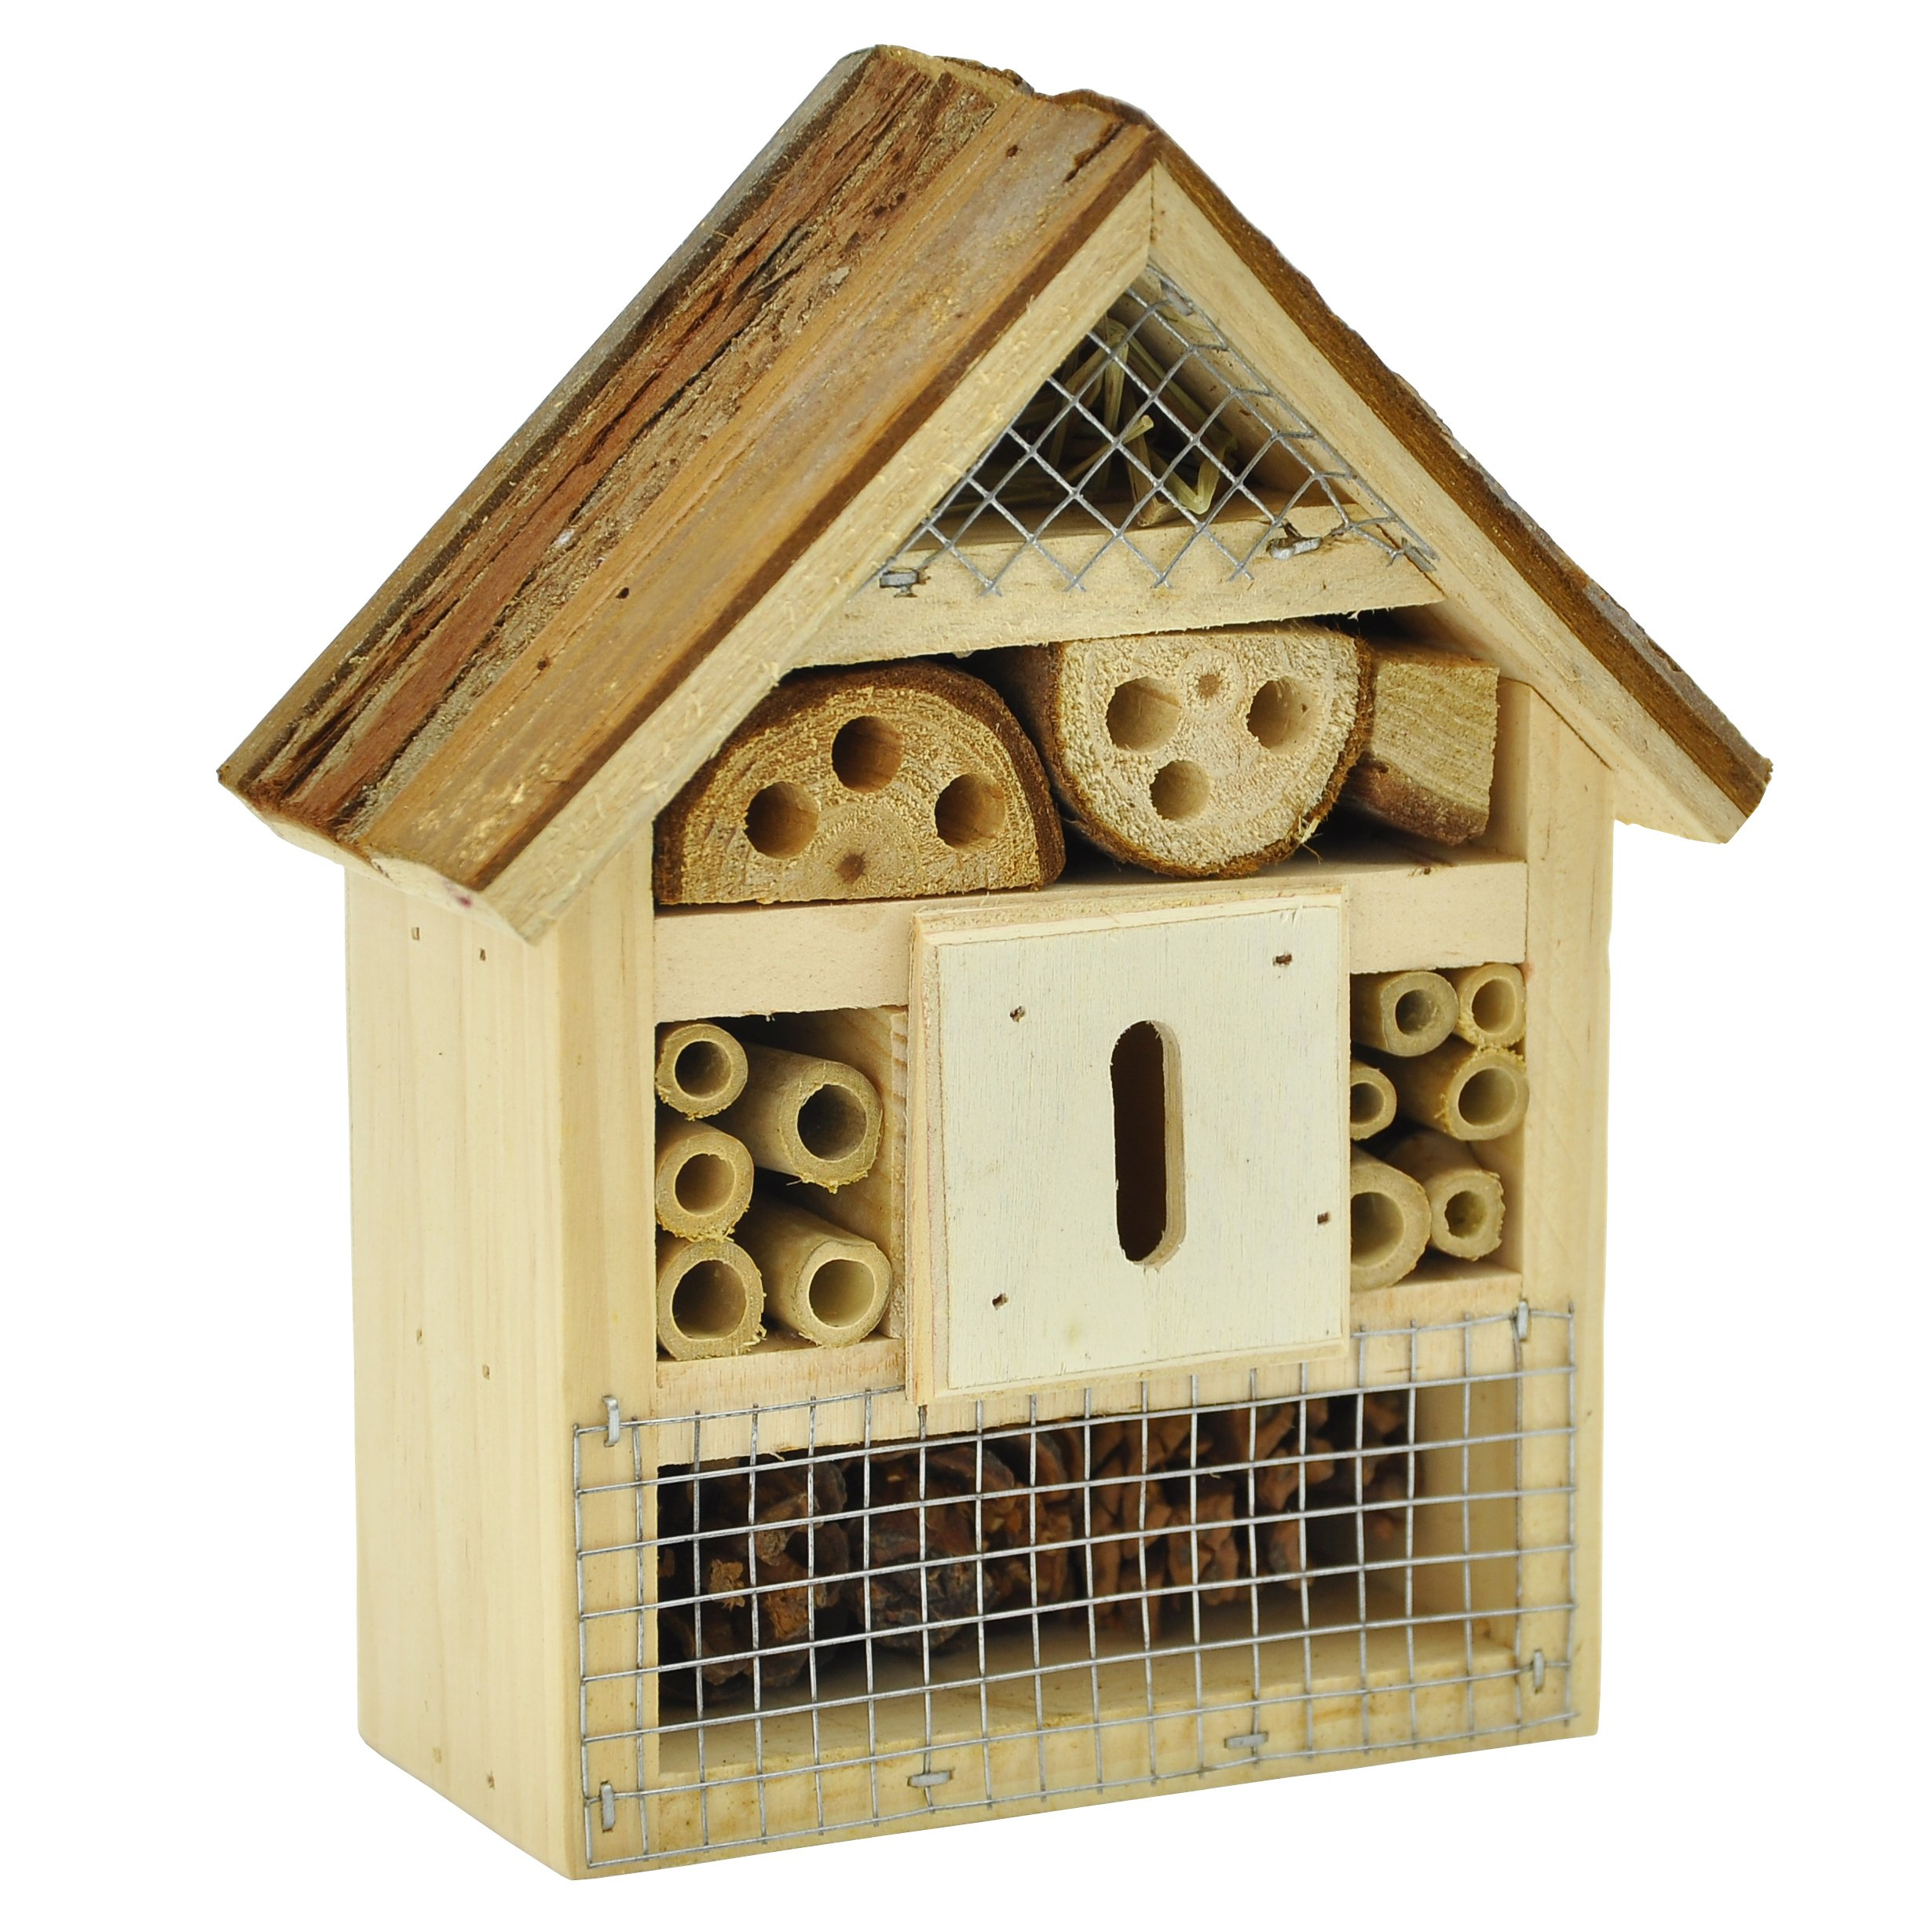 Gardirect Wooden Insect Hotel & Bee House, Small Size, 6'' x 2-3/4'' x 7'' by Gardirect